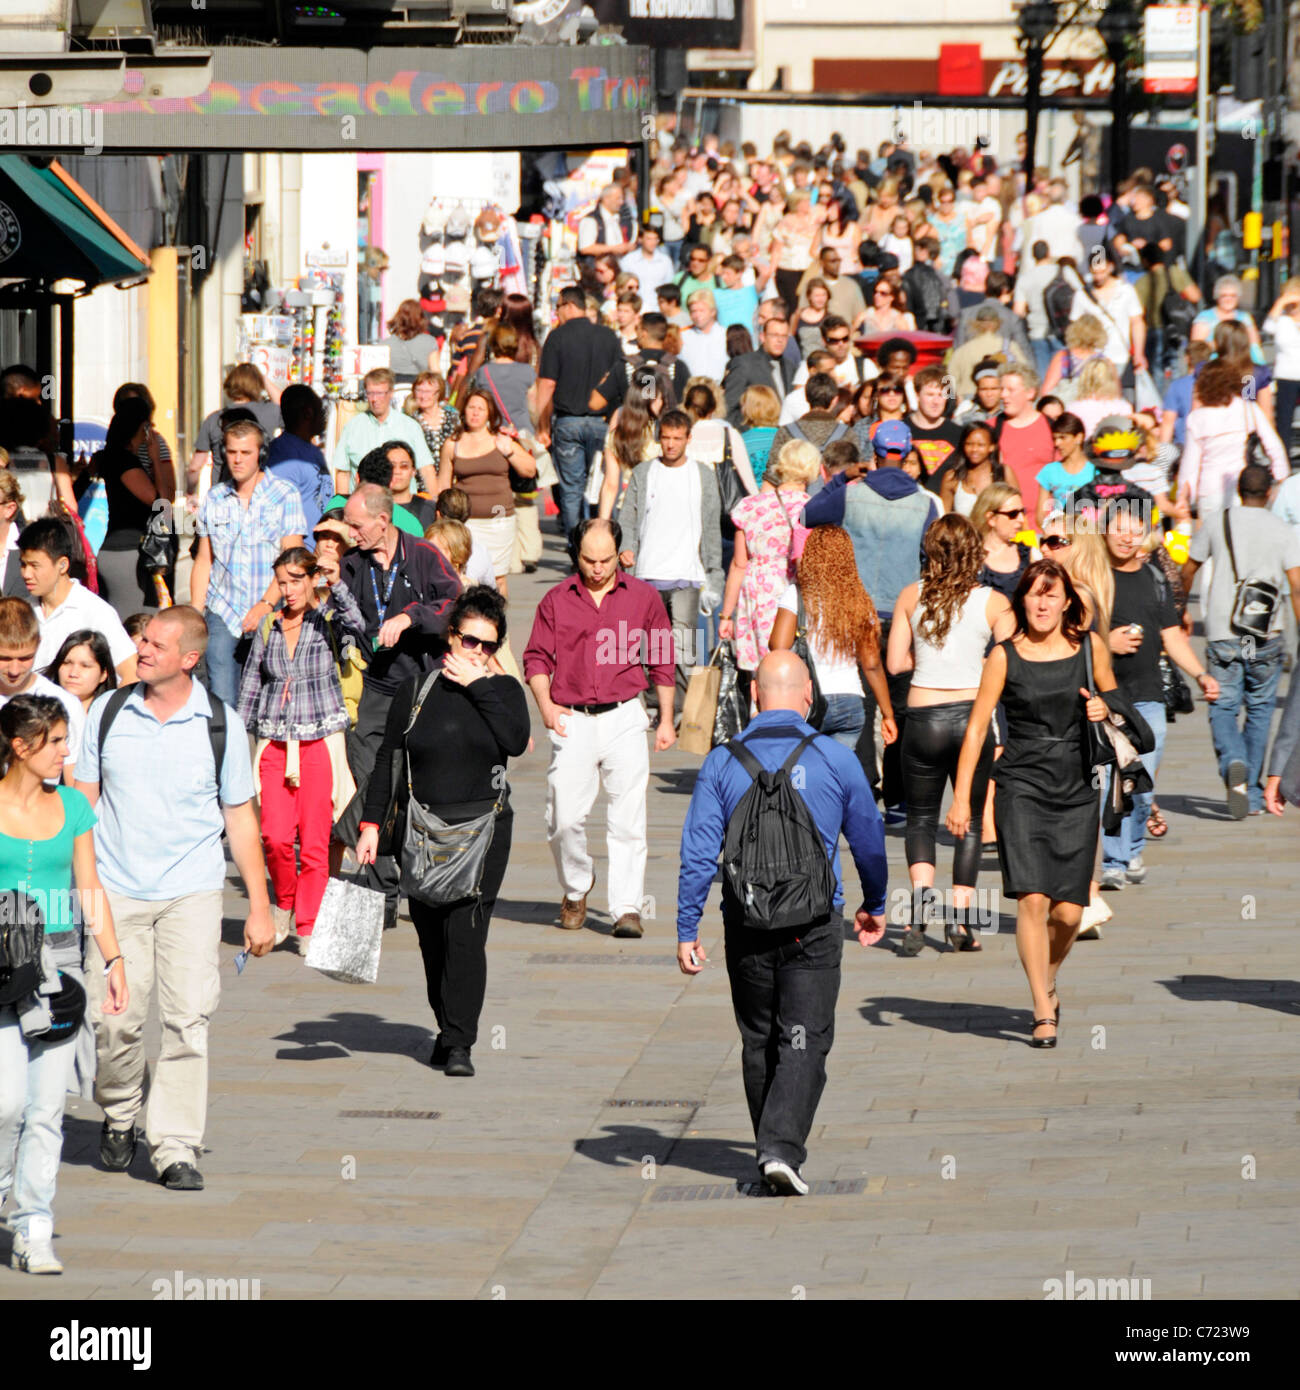 Busy street scene outside the Trocadero shopping complex London - Stock Image